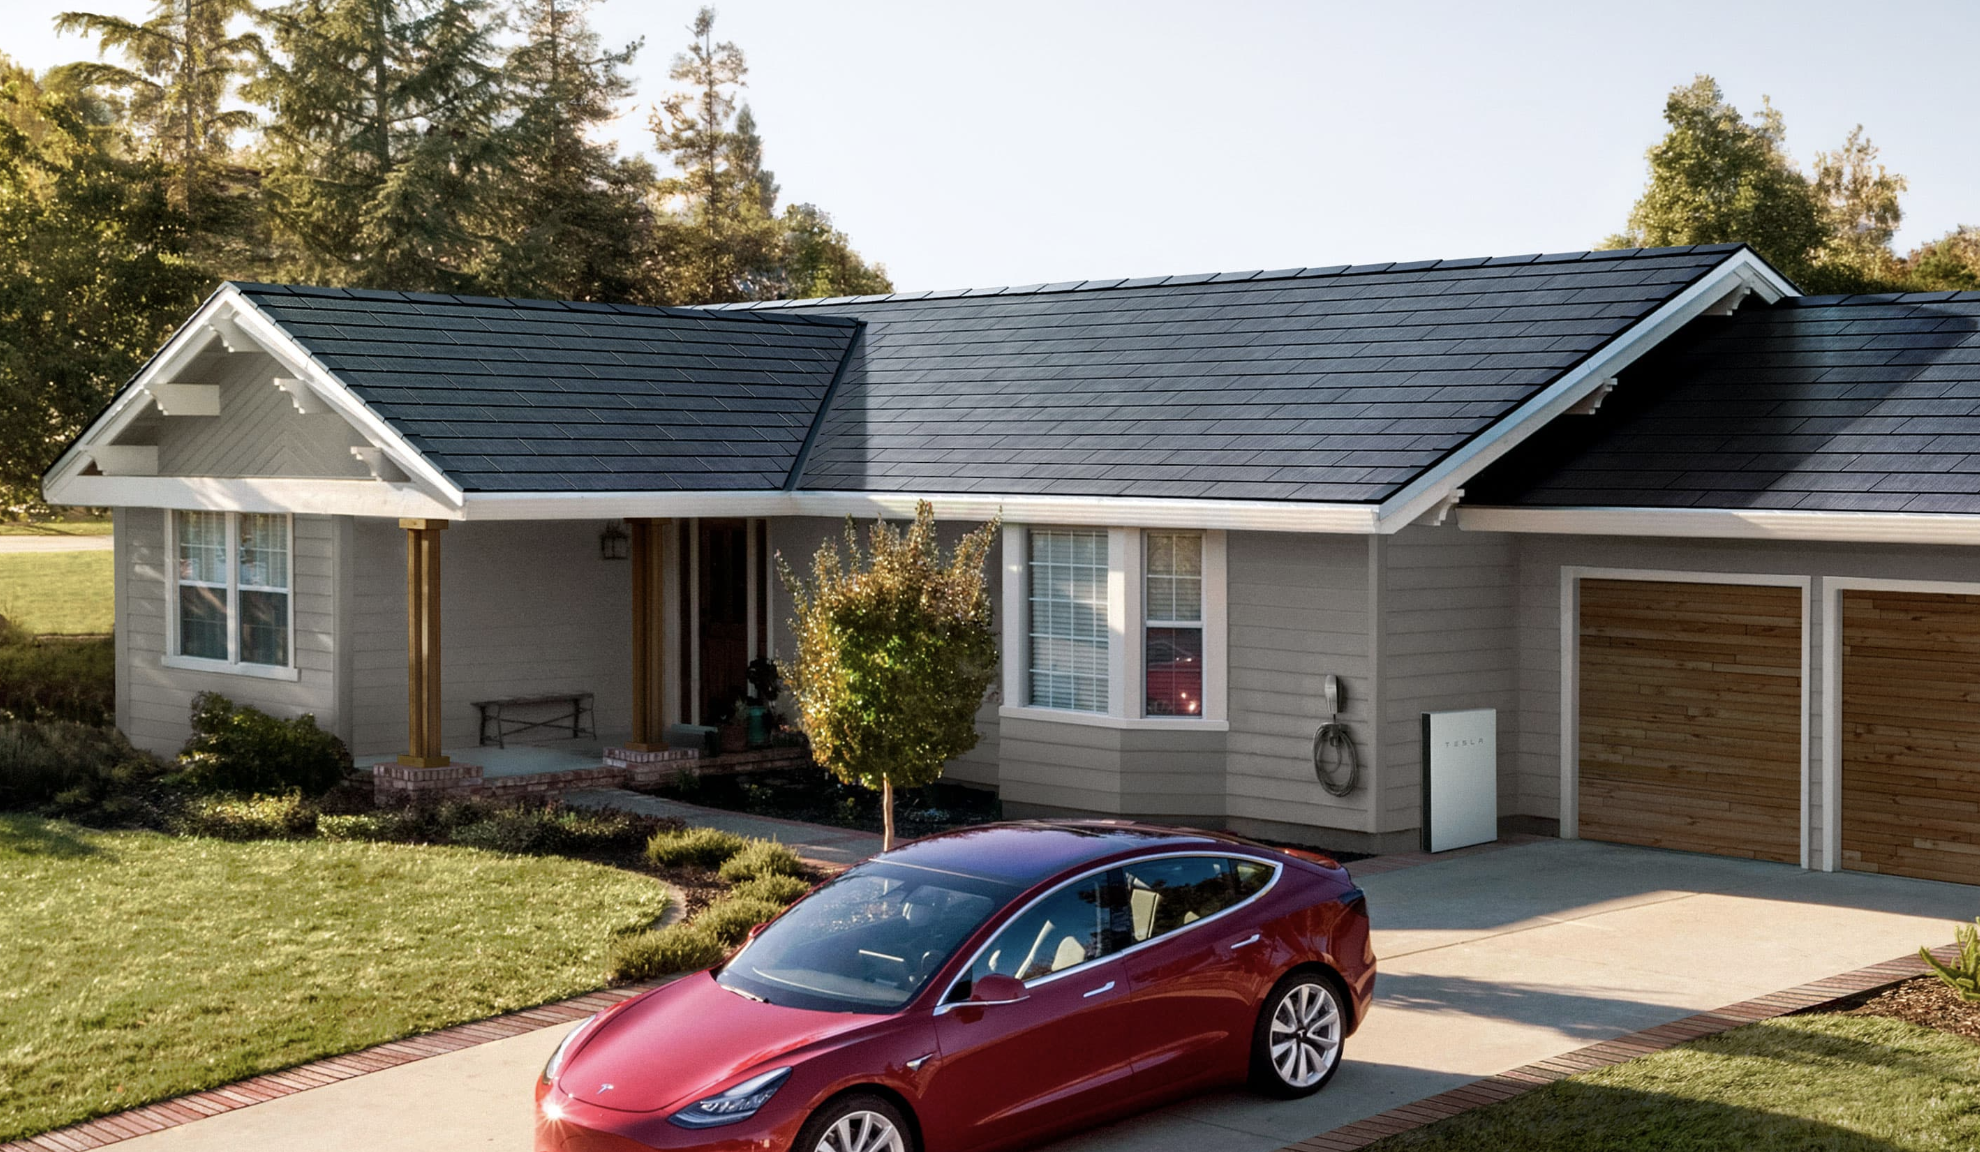 Tesla unveils its easier to install Solar Roof | DeviceDaily.com